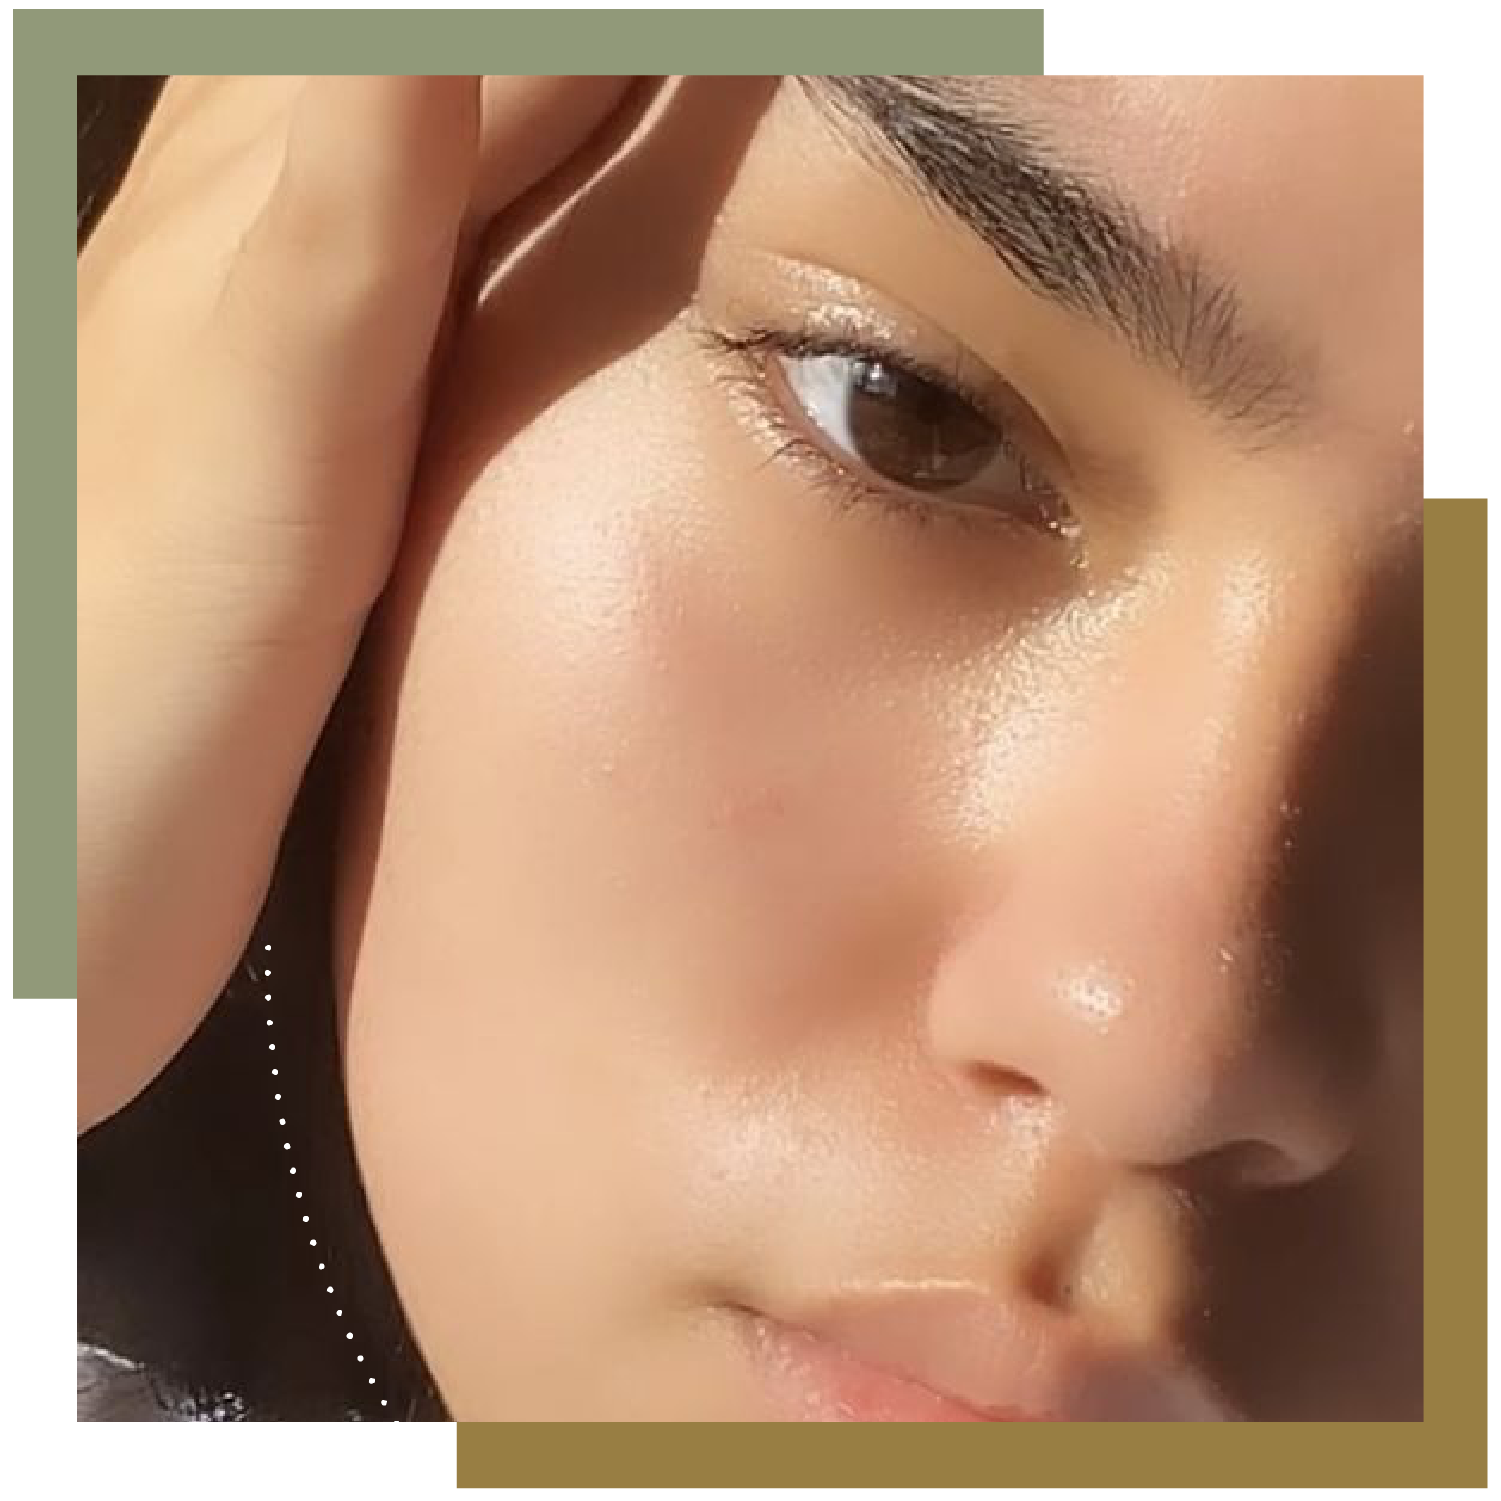 How to get A+ skin: Lion/ne golden rules of skincare